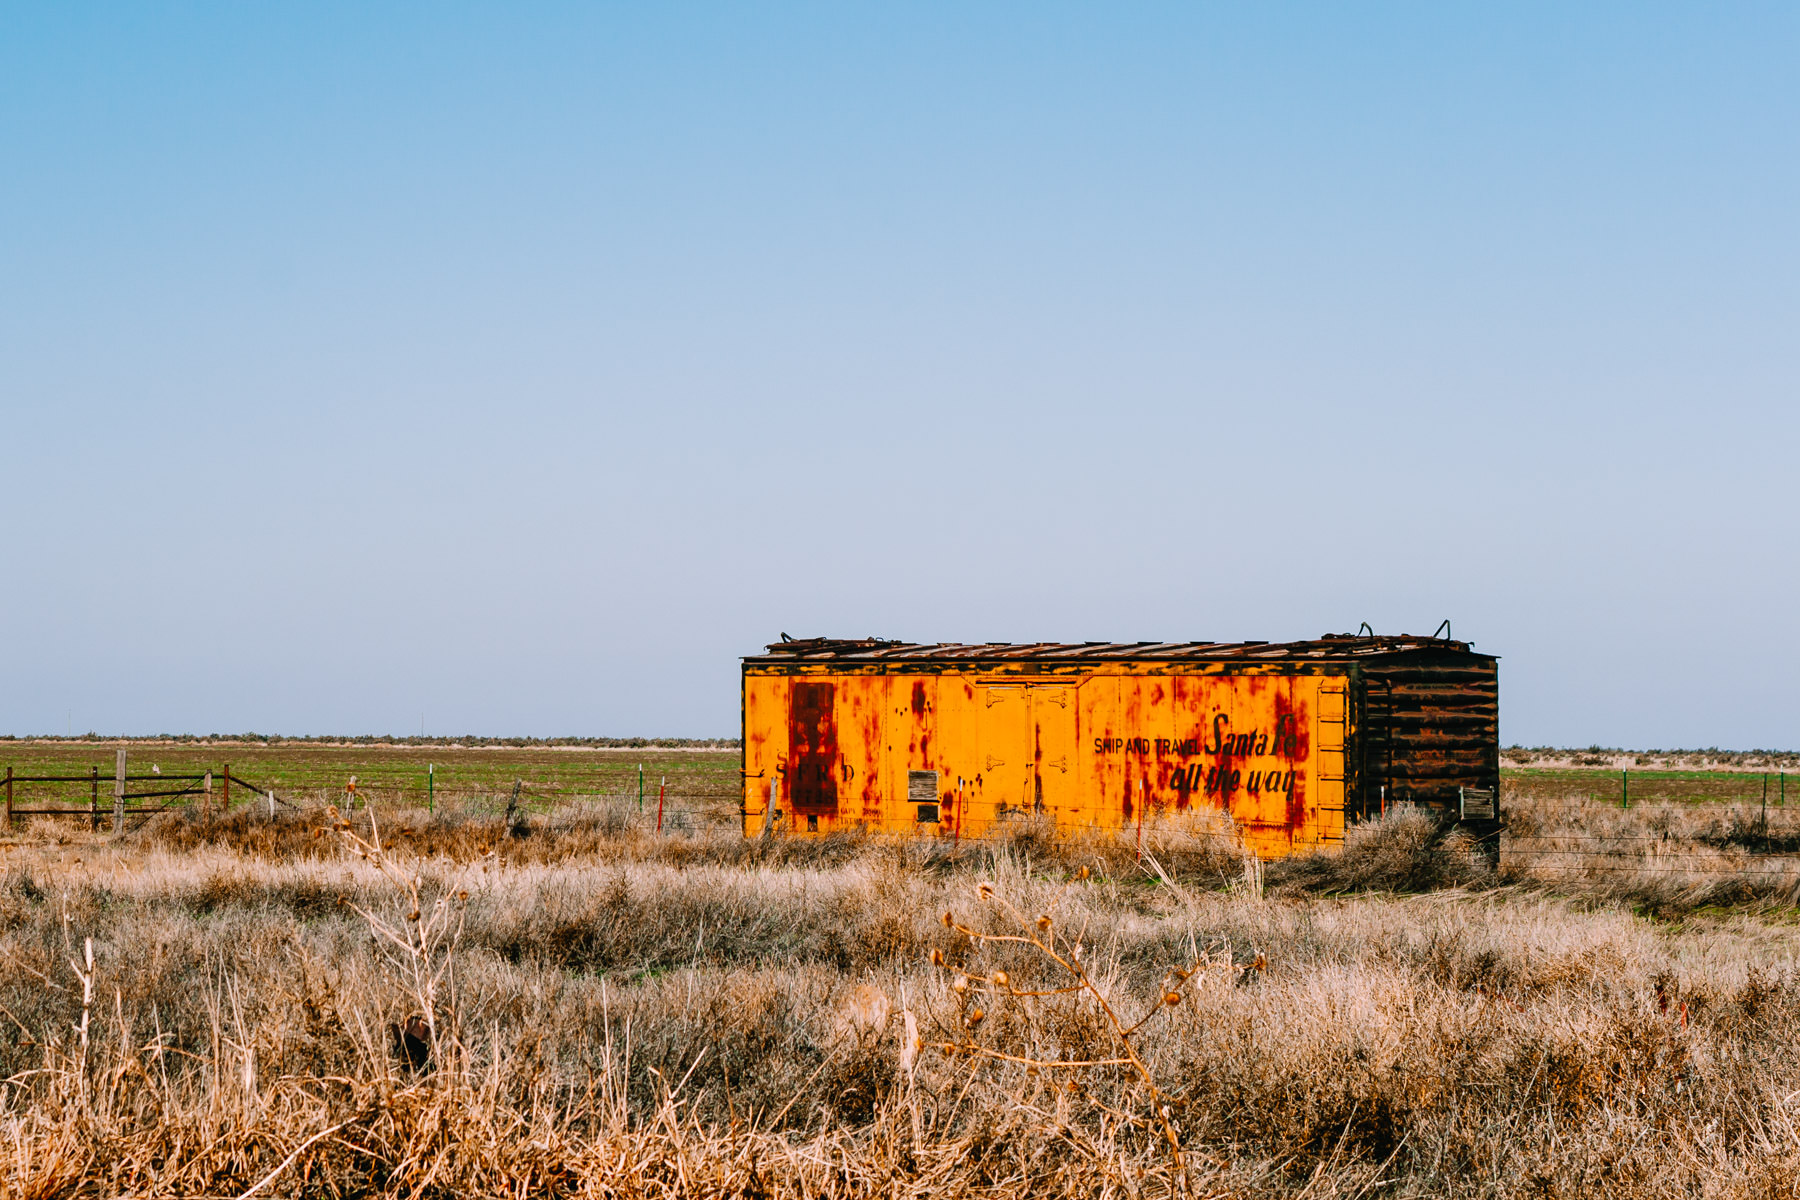 An abandoned boxcar in a field somewhere in the Texas Panhandle.